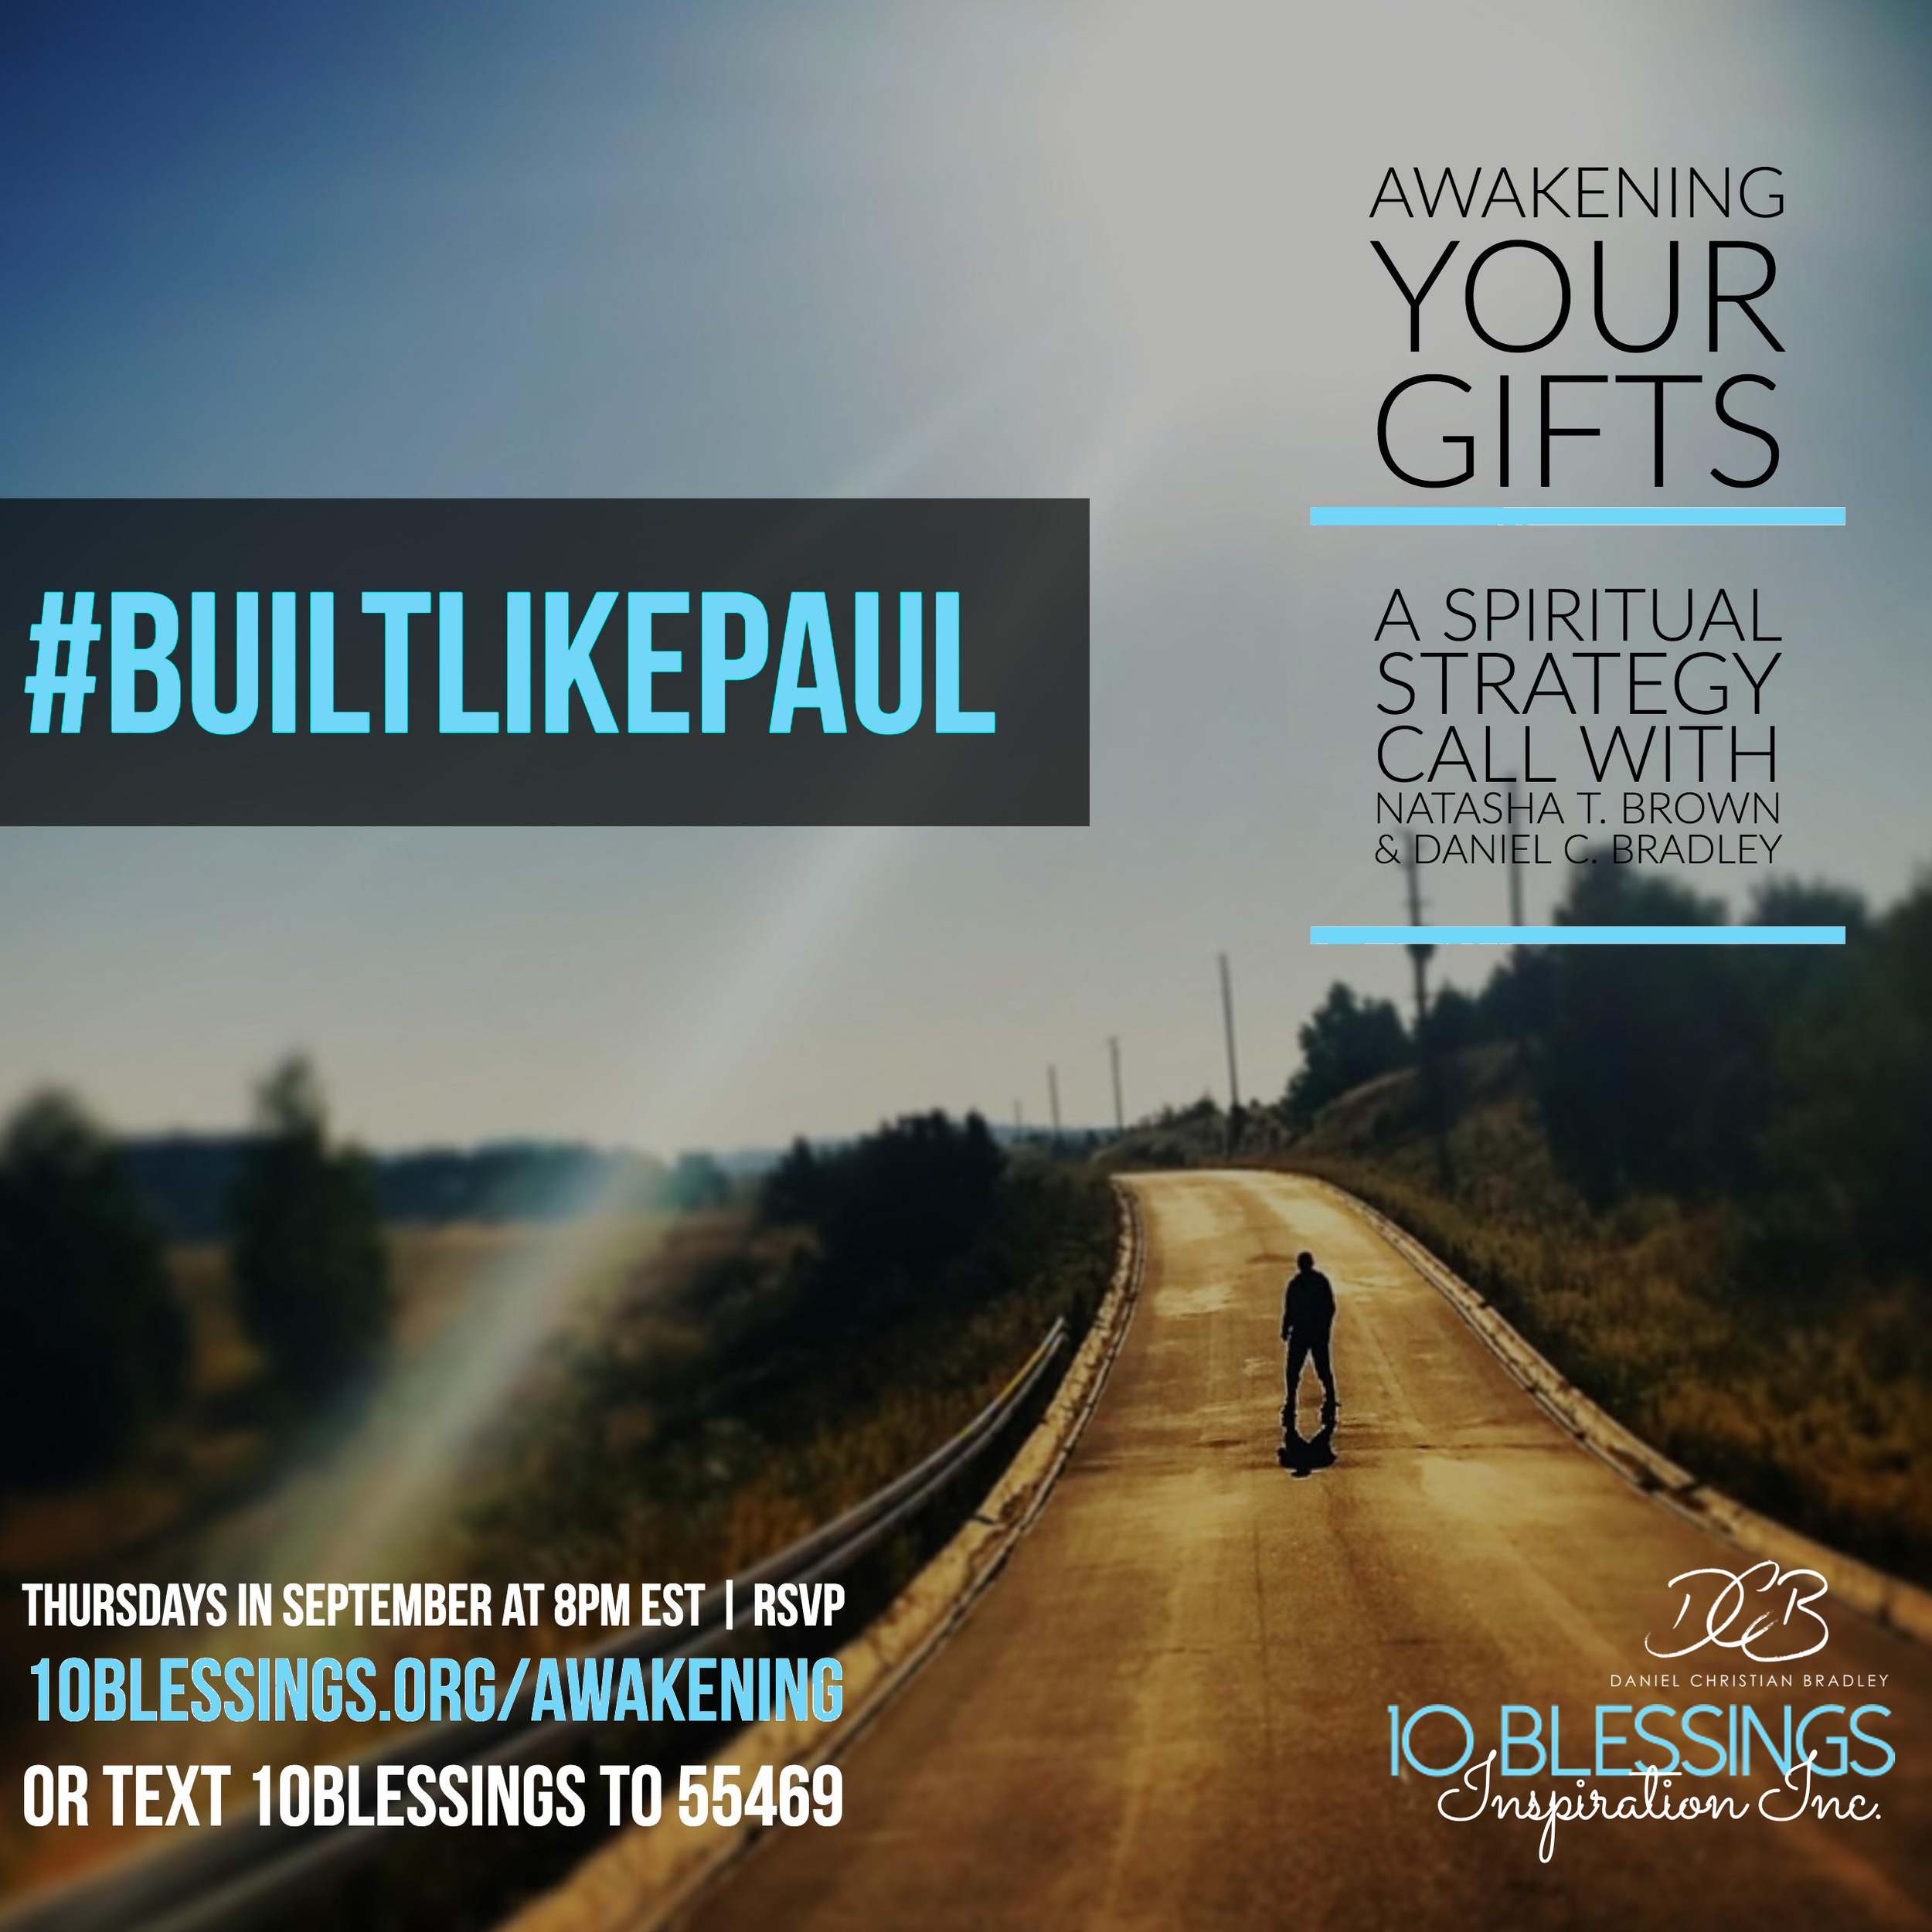 Join us tonight for part 1 of #BuiltLikePaul hosted by Natasha T. Brown & Daniel C. Bradley.  Dial in at 8pm EST!218-895-4502 pass: 3333#.